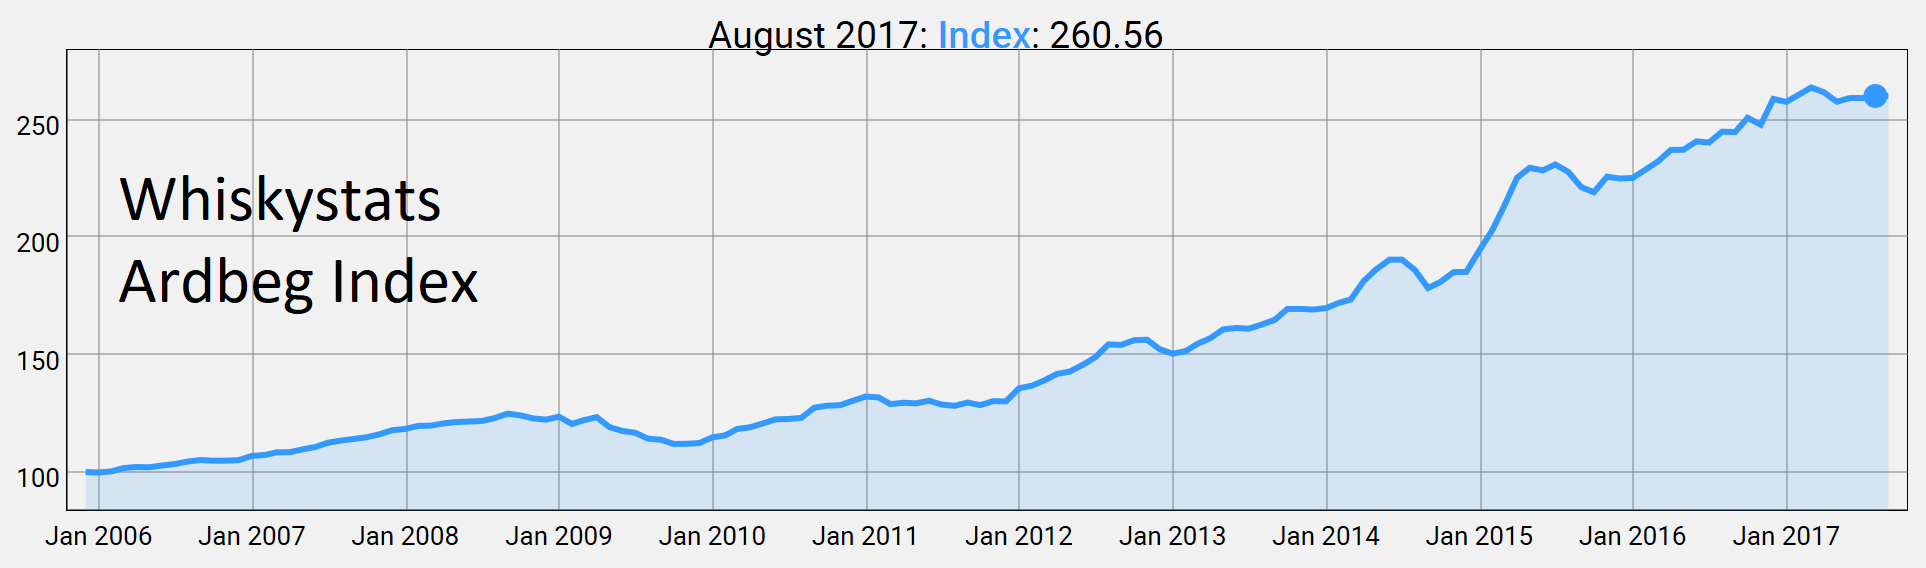 Ardbeg Index by August 2017